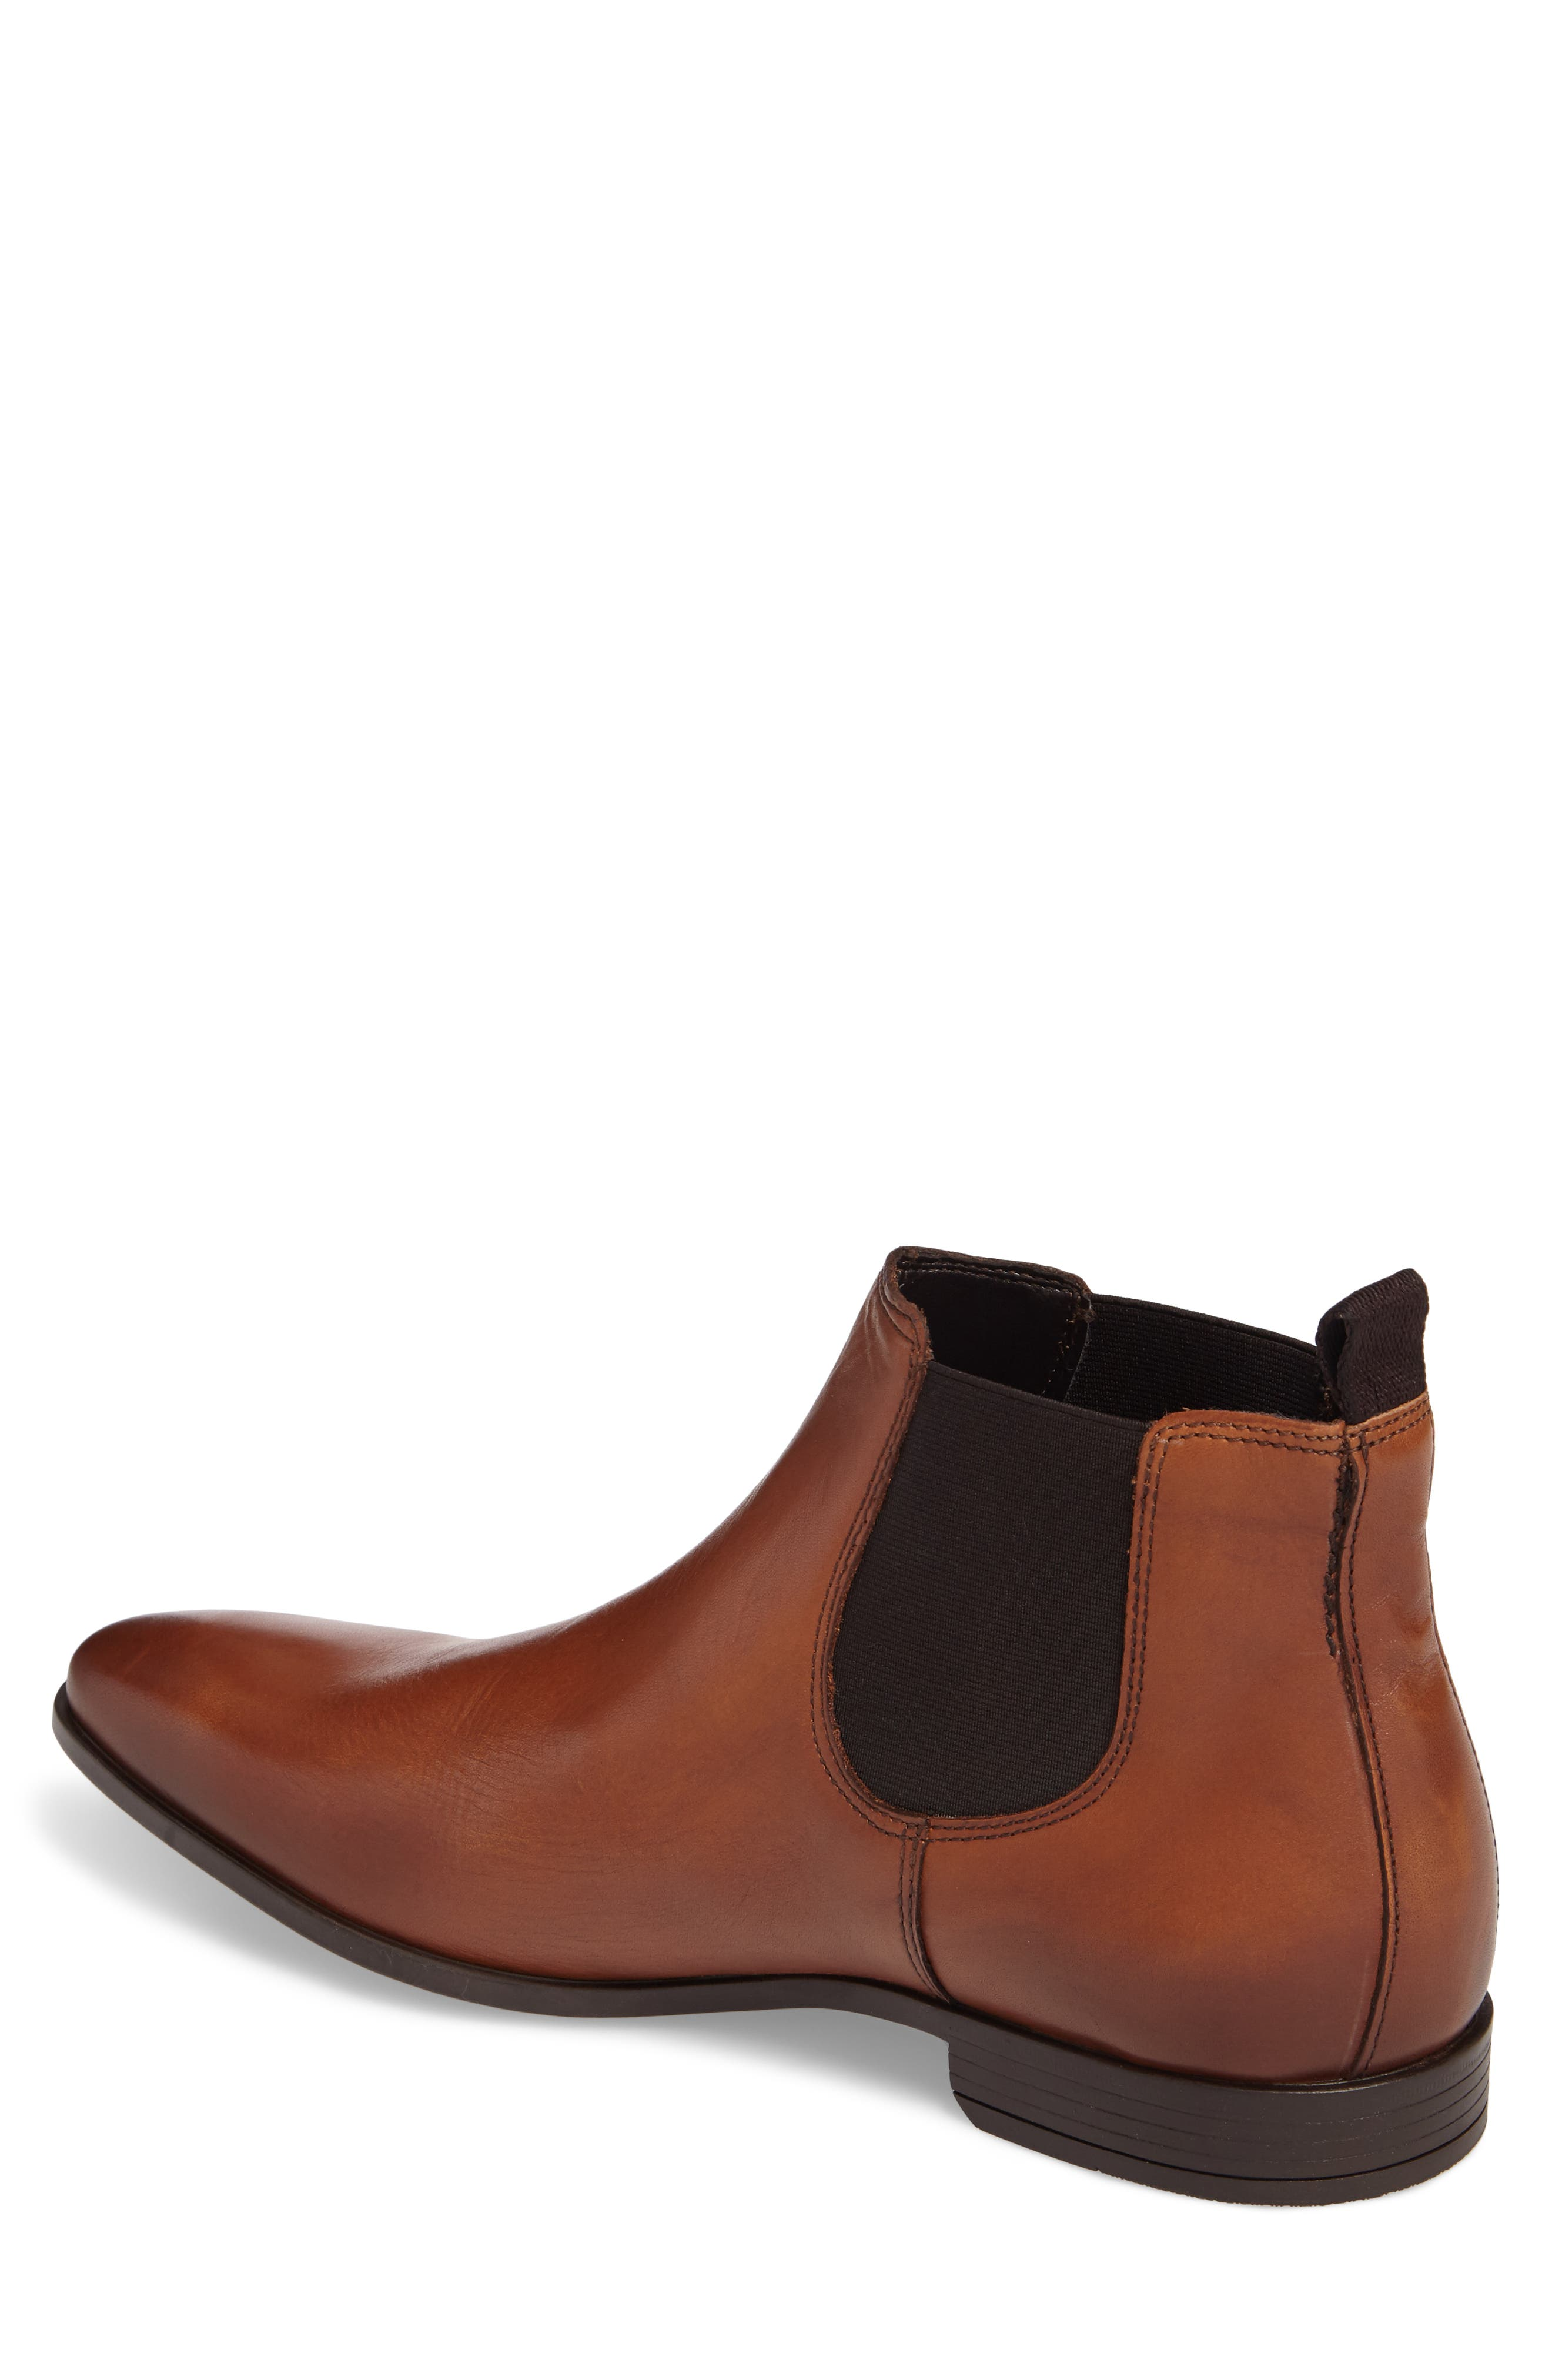 'Canton' Chelsea Boot,                             Alternate thumbnail 4, color,